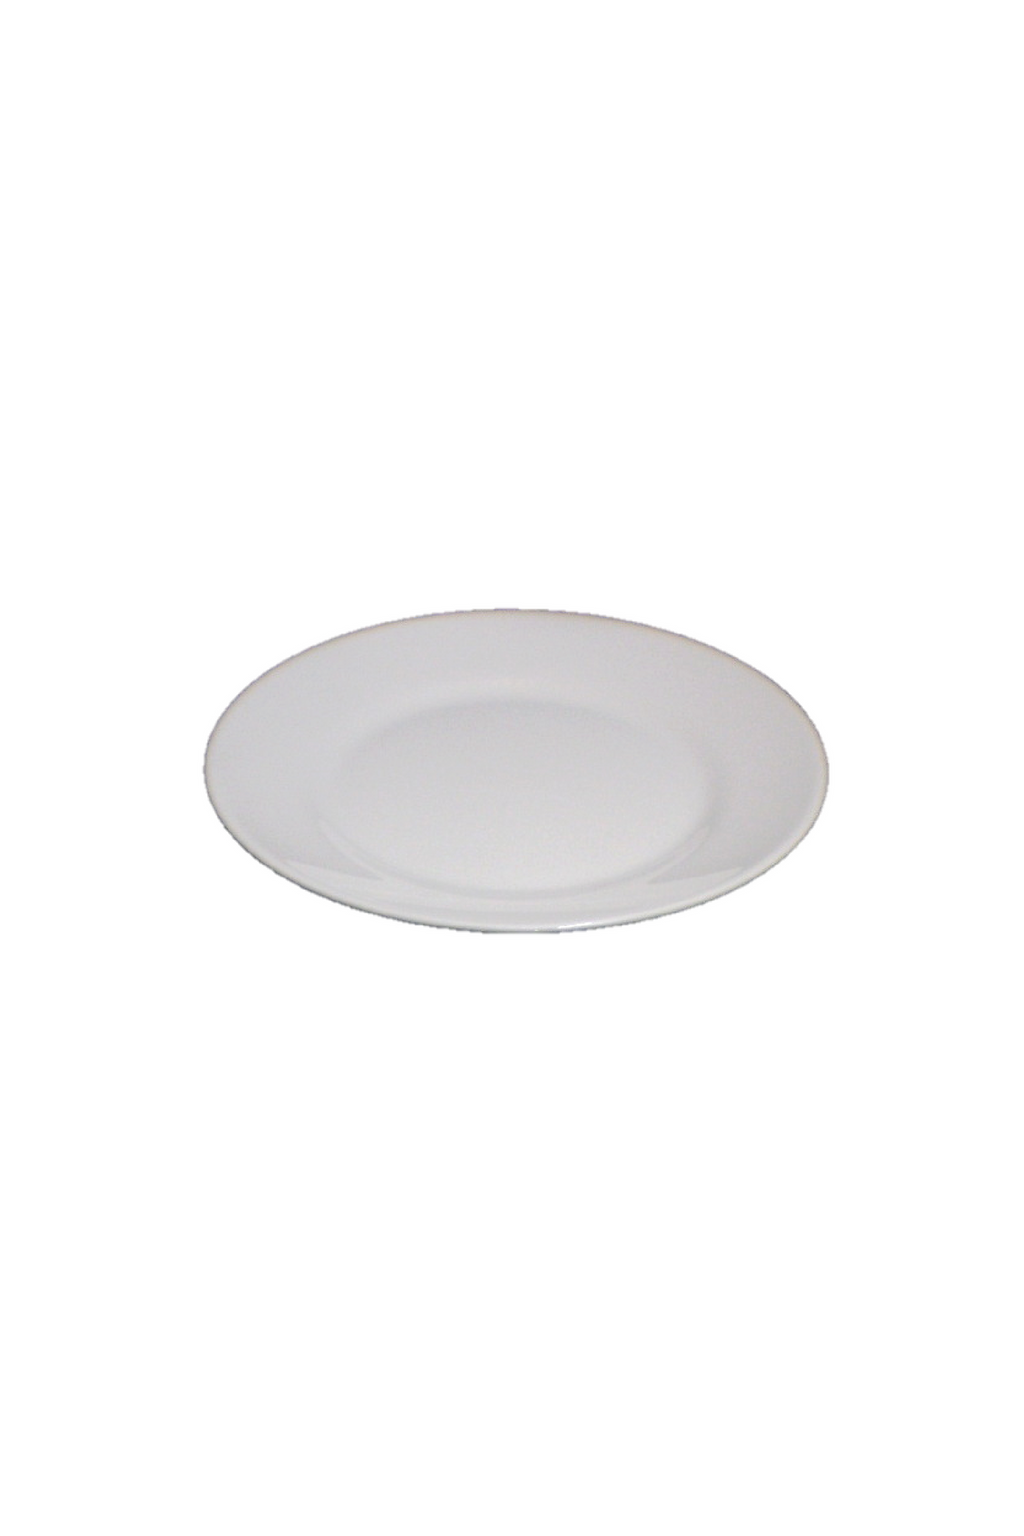 "Thick 9"" Entree/Dessert Plate"